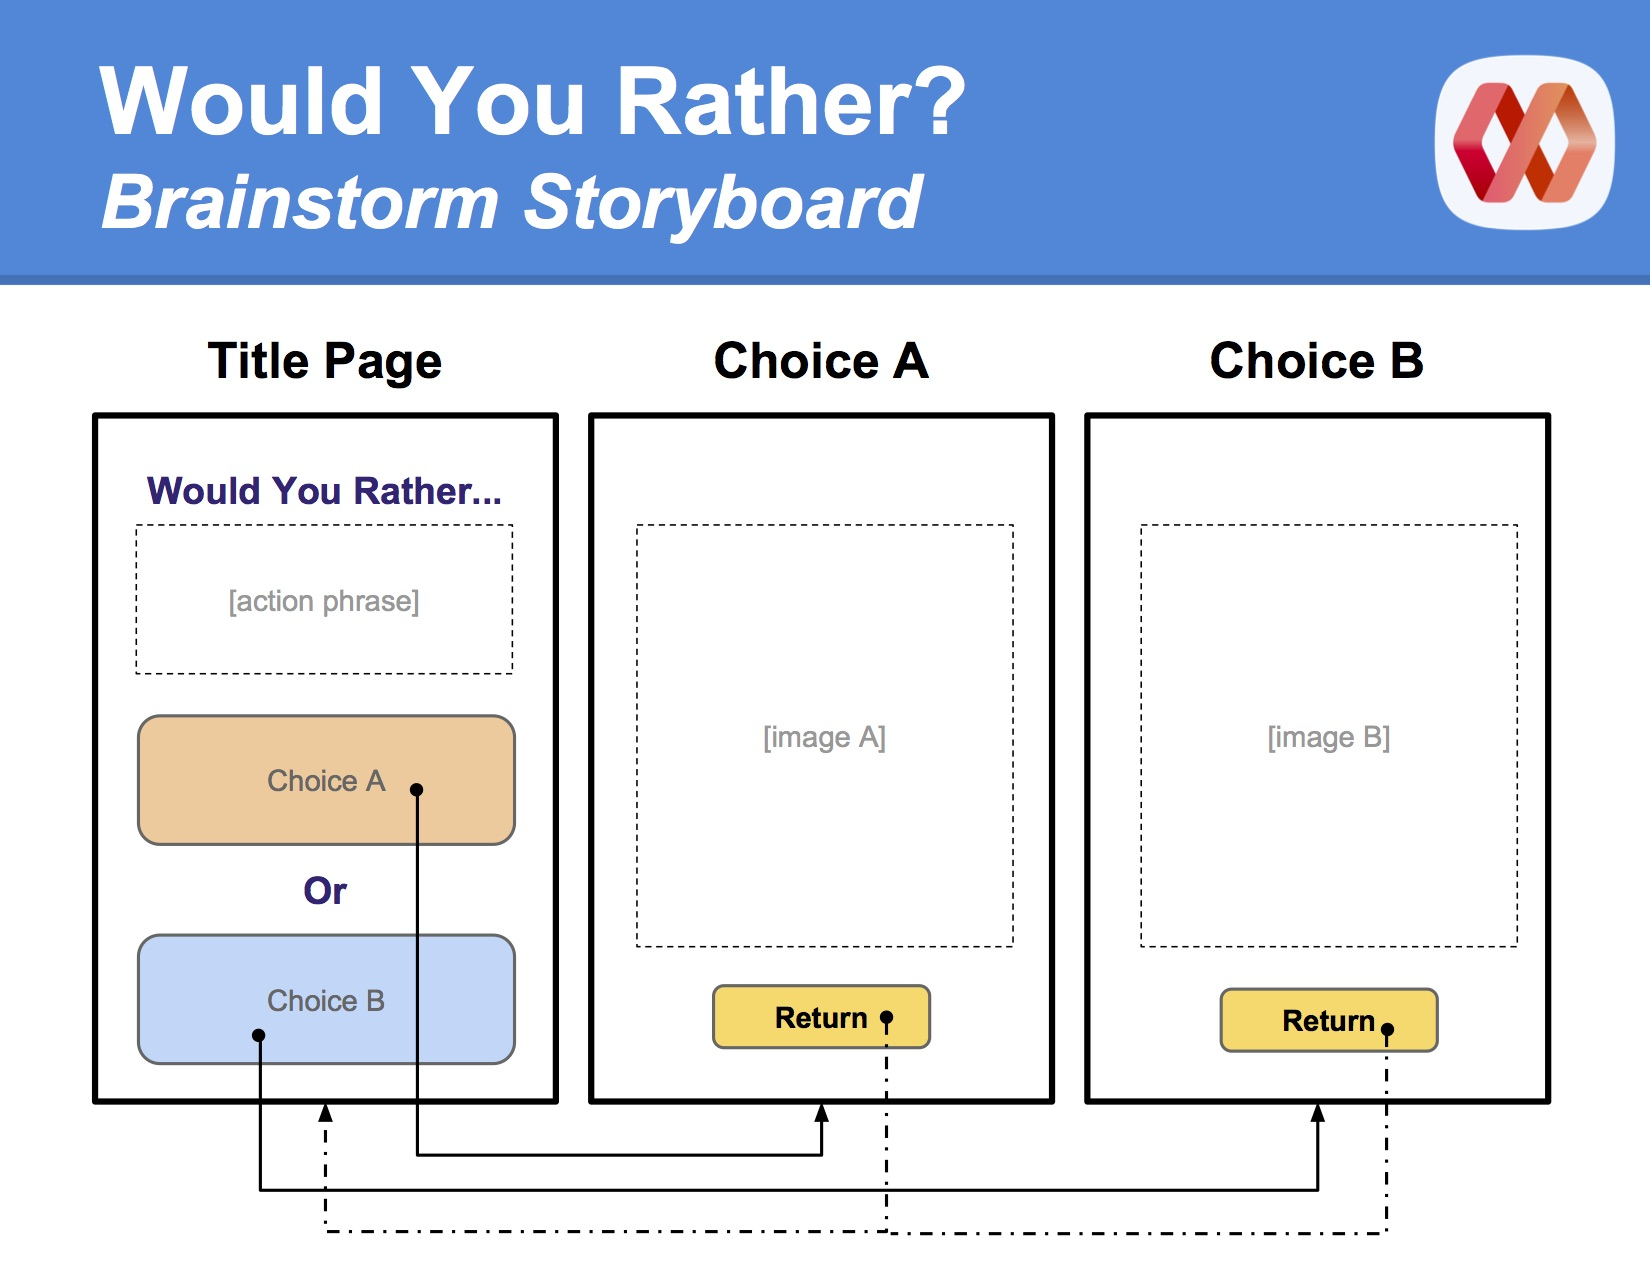 Would You Rather Storyboard Link Solution